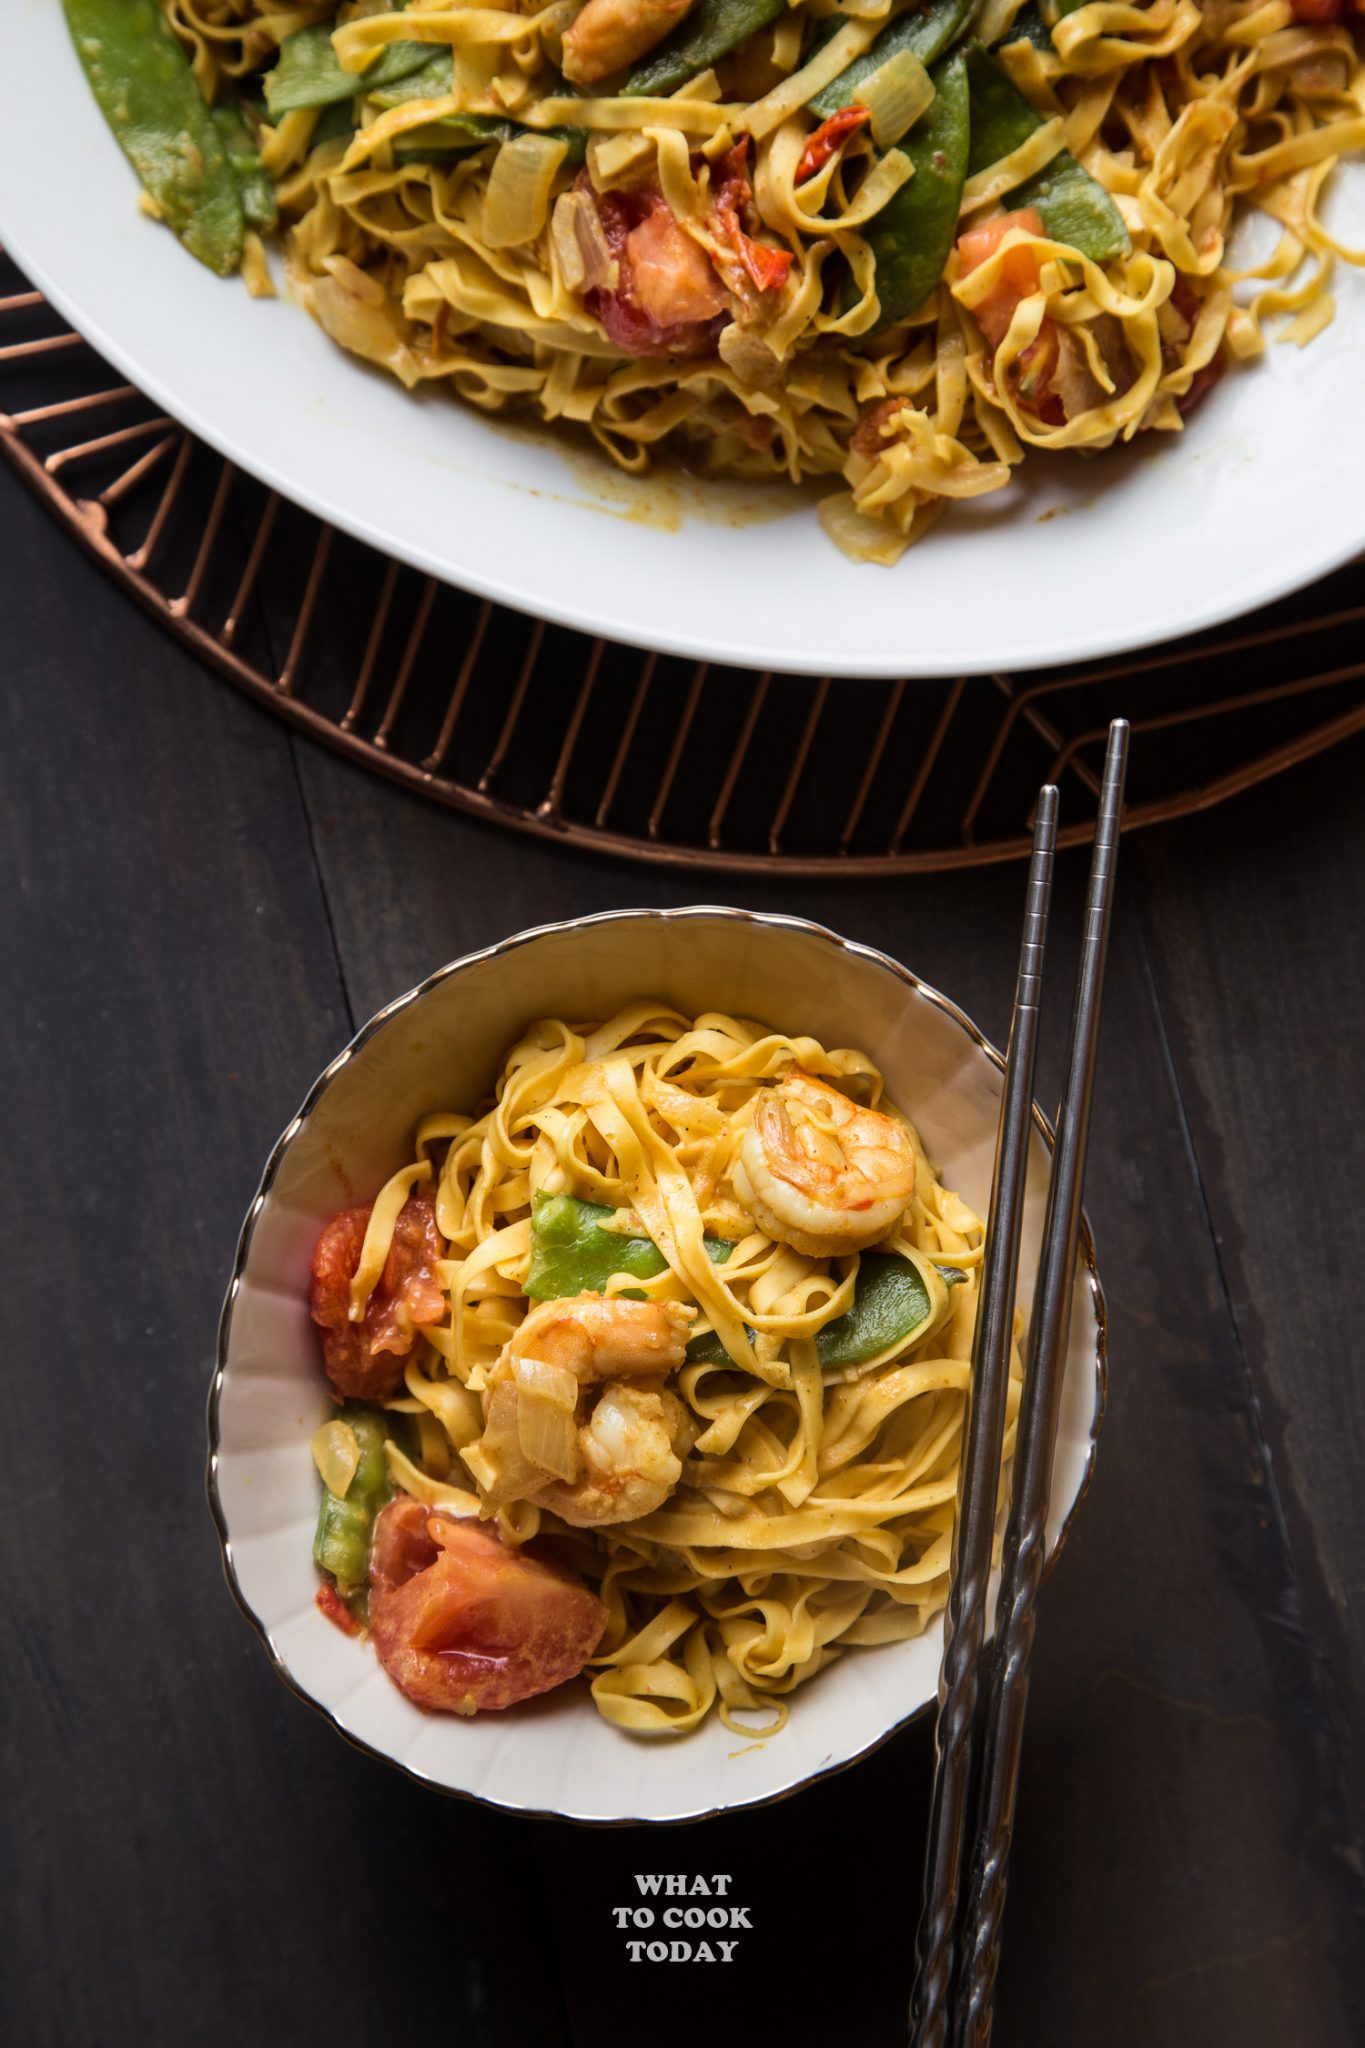 Saucy Curry Shrimp Chow Mein #instantpot #chowmein #noodles #curry #easyrecipe